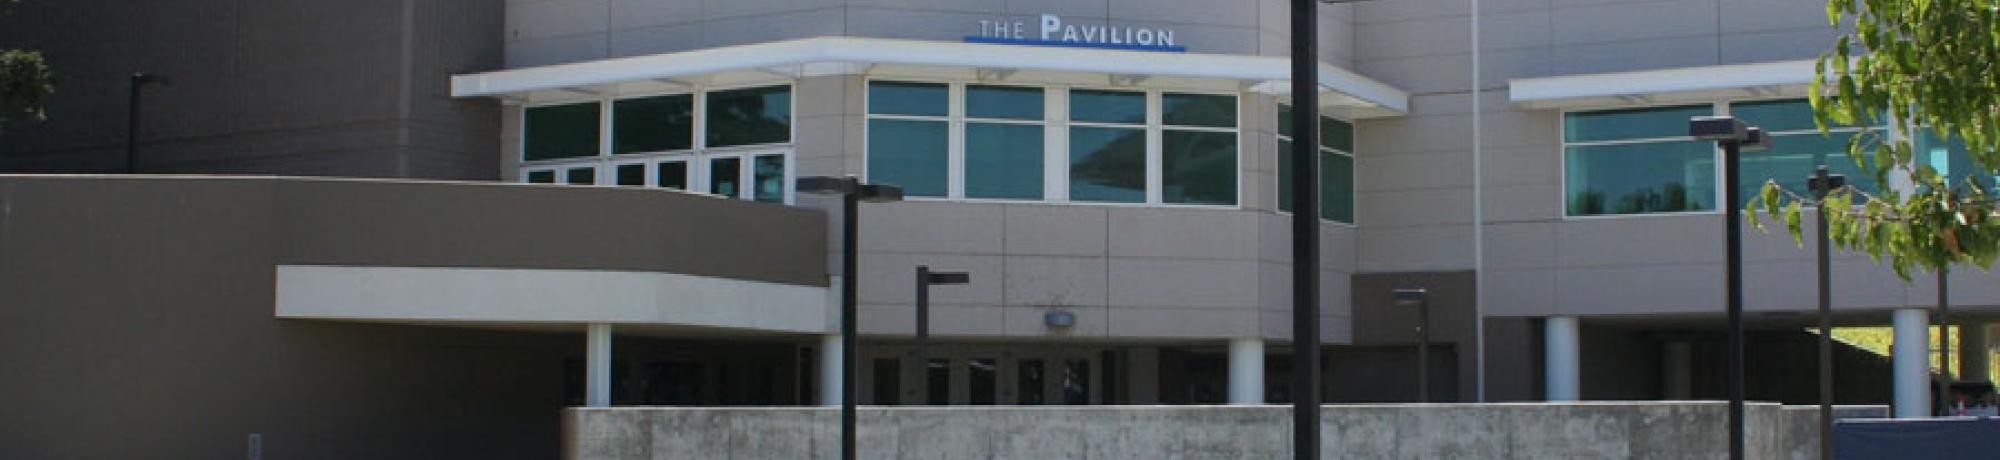 exterior of the pavilion